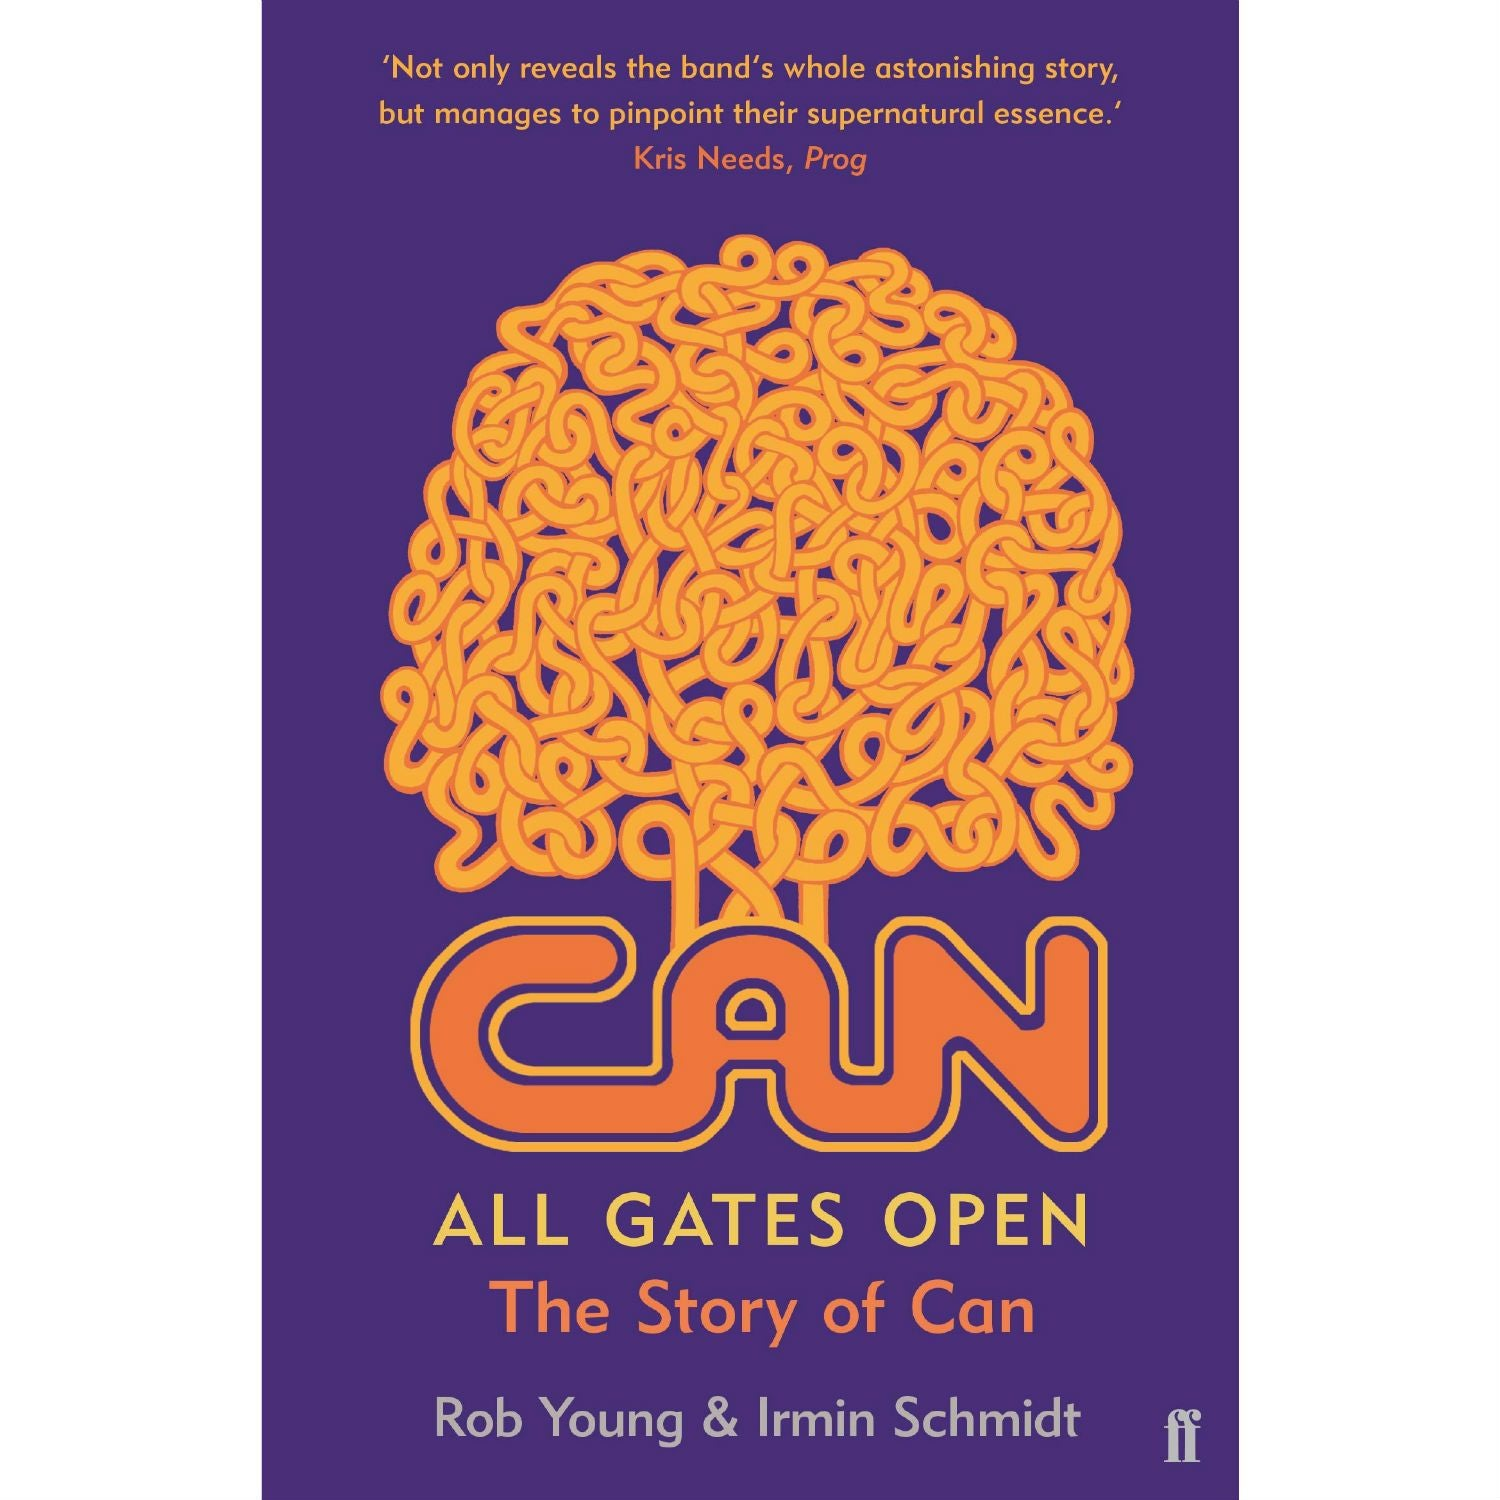 All Gates Open: The Story of CAN (paperback)